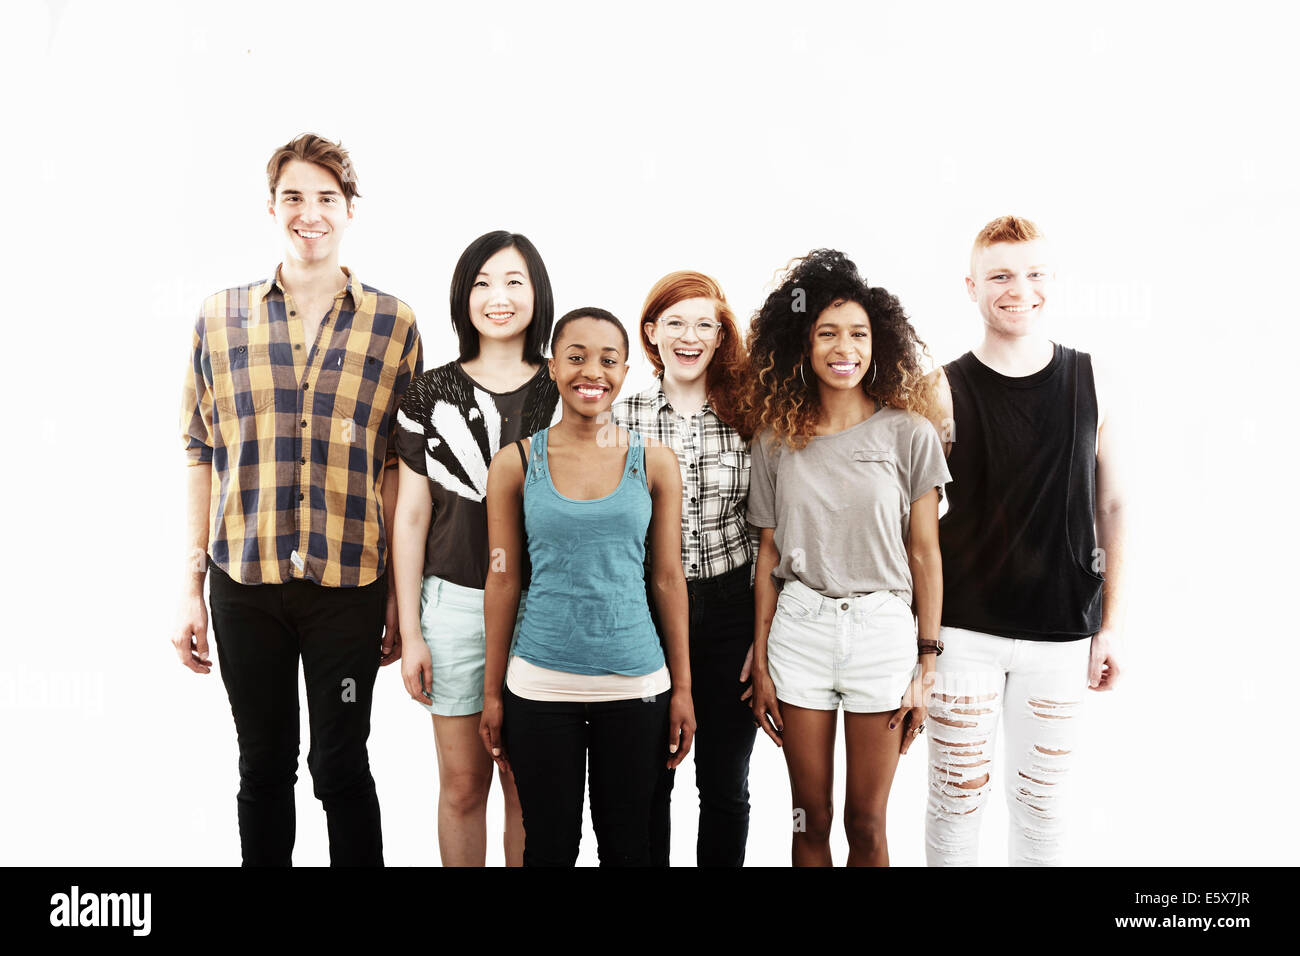 Formal studio portrait of six young adult friends - Stock Image